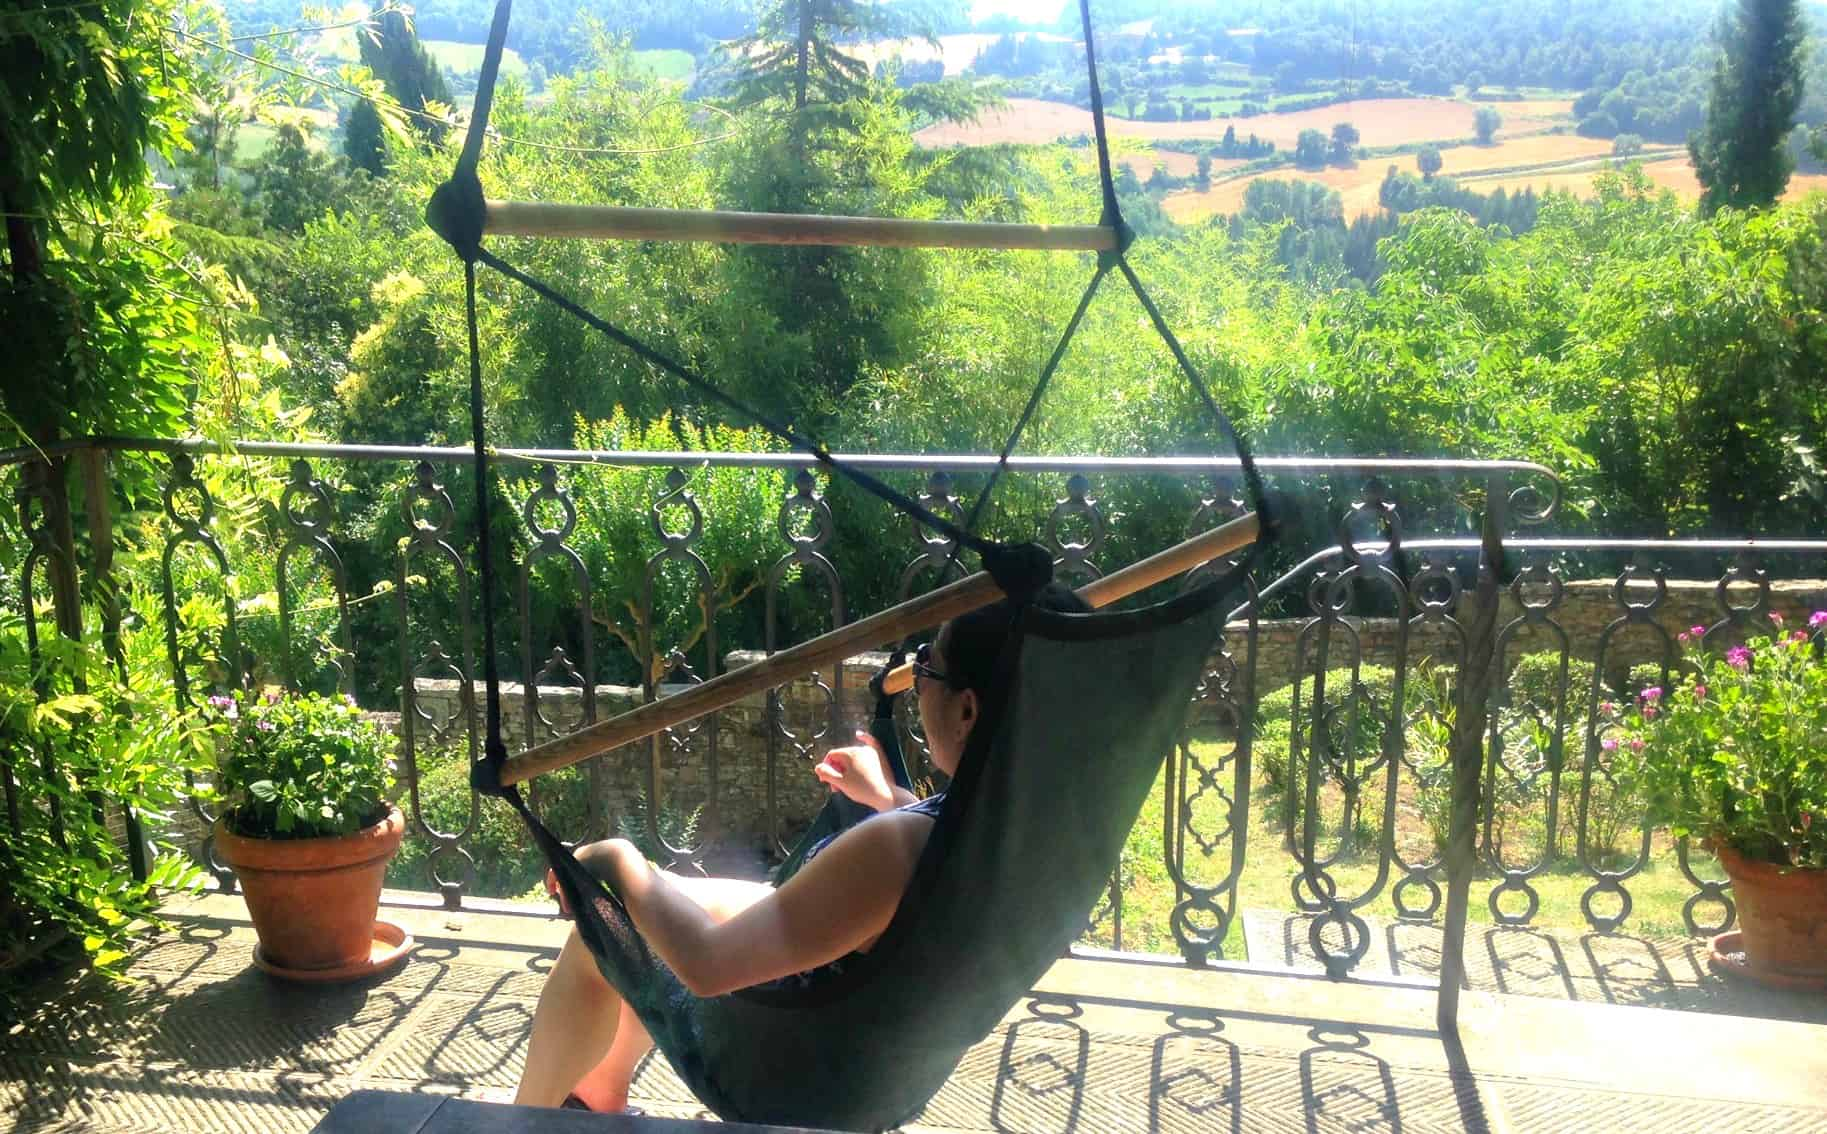 Reviewed: A Relaxing Family Stay at Villa Pia Italy | My